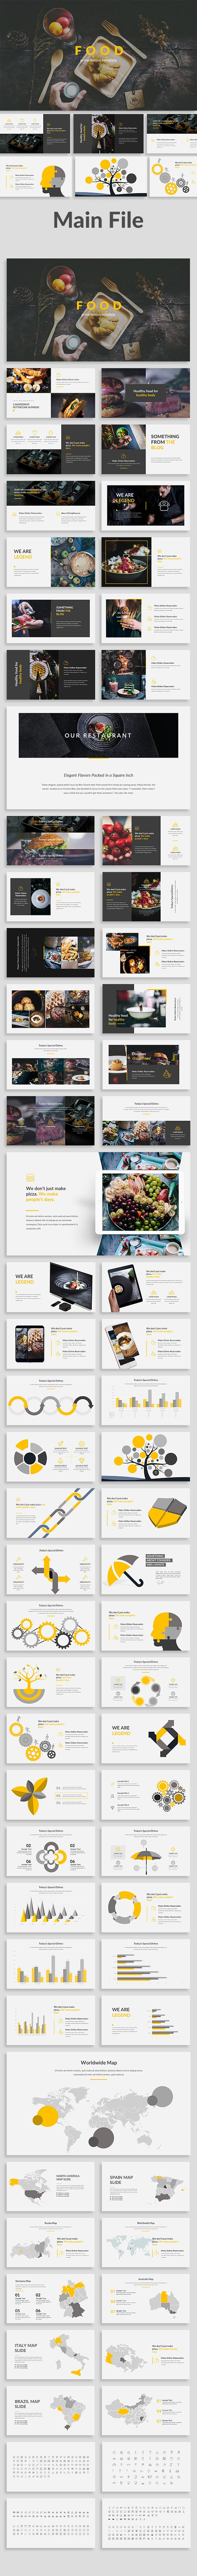 The Food Keynote Template